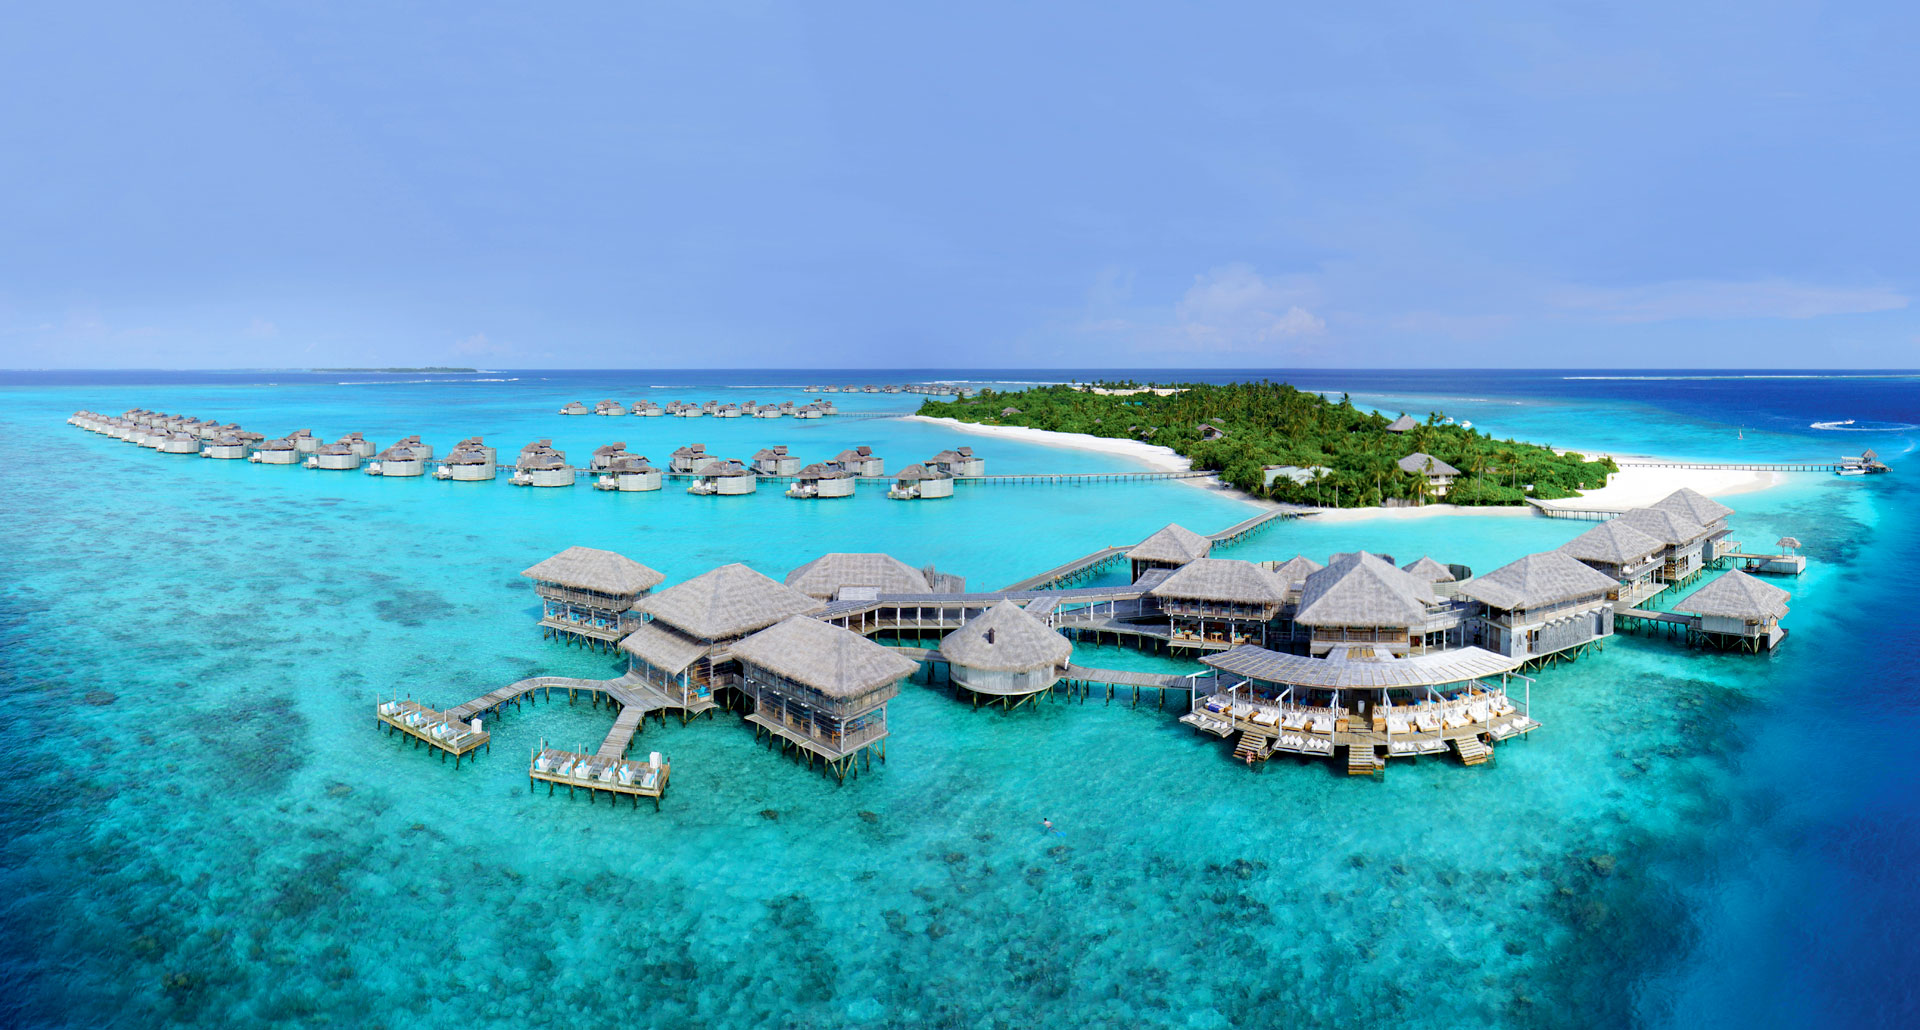 Six Senses Laamu - boutique hotel in The Maldives